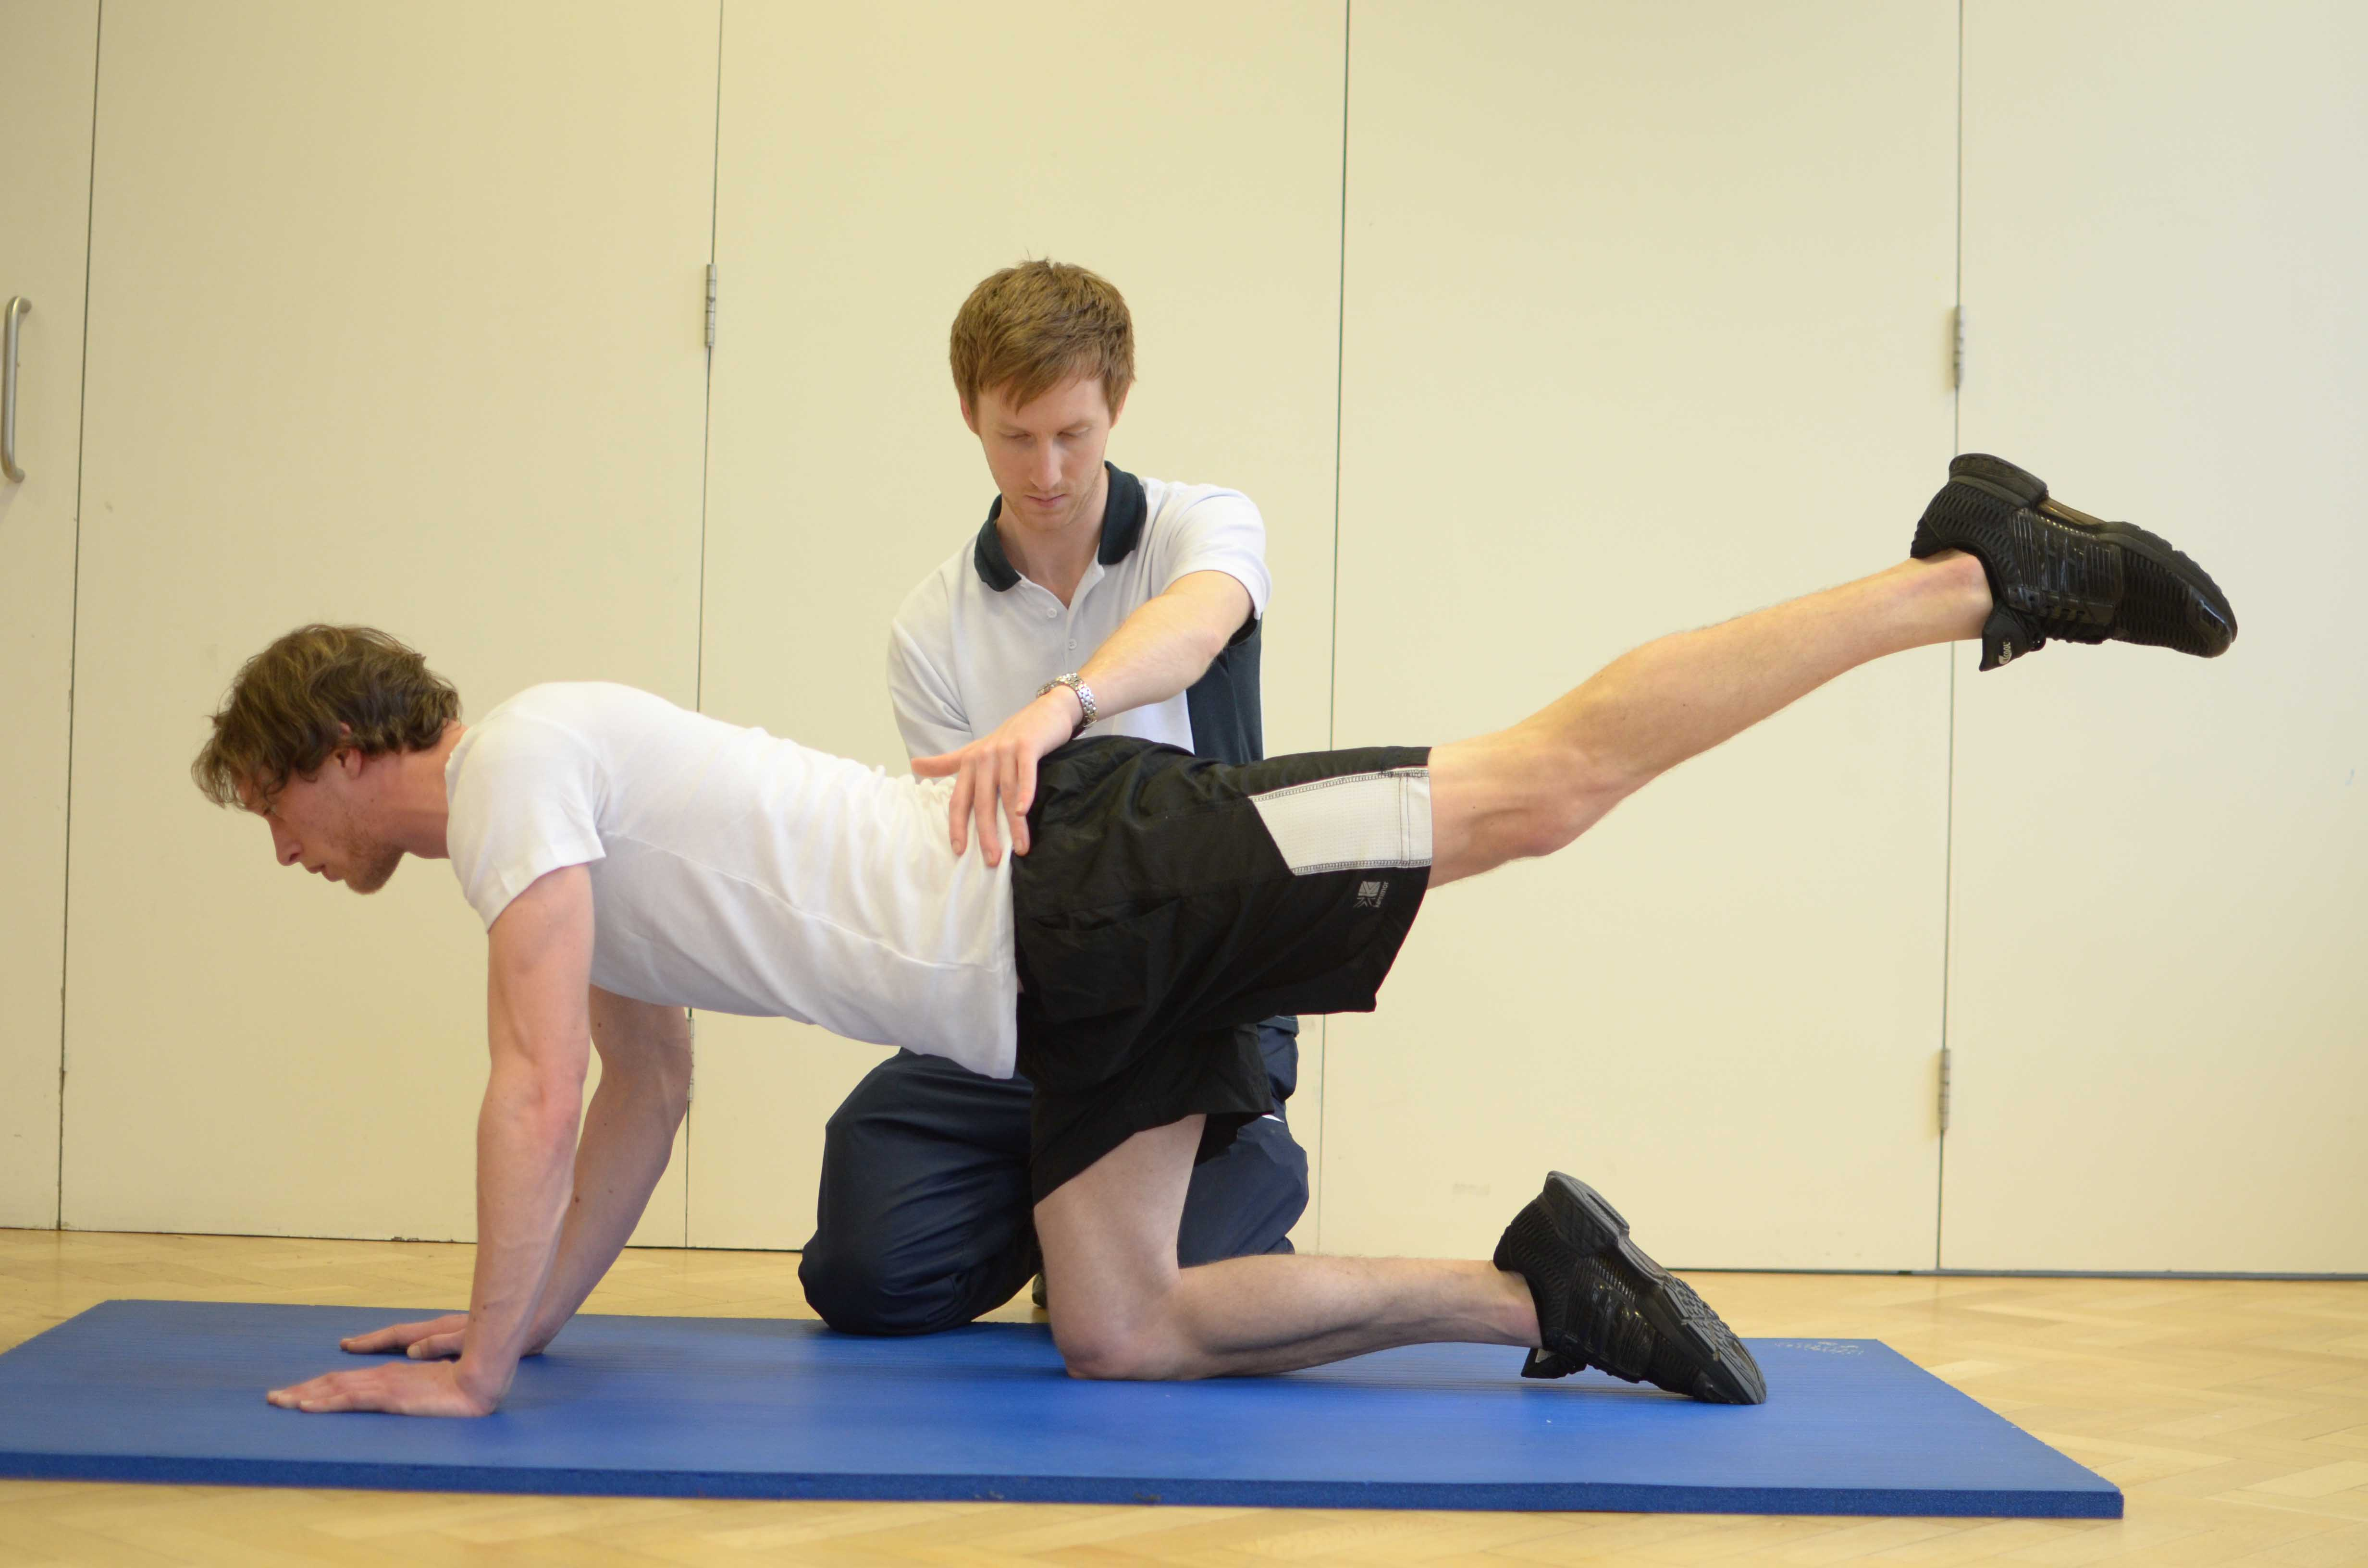 Strengthening and mobilisation exercises performed under supervision from a physiotherapist.